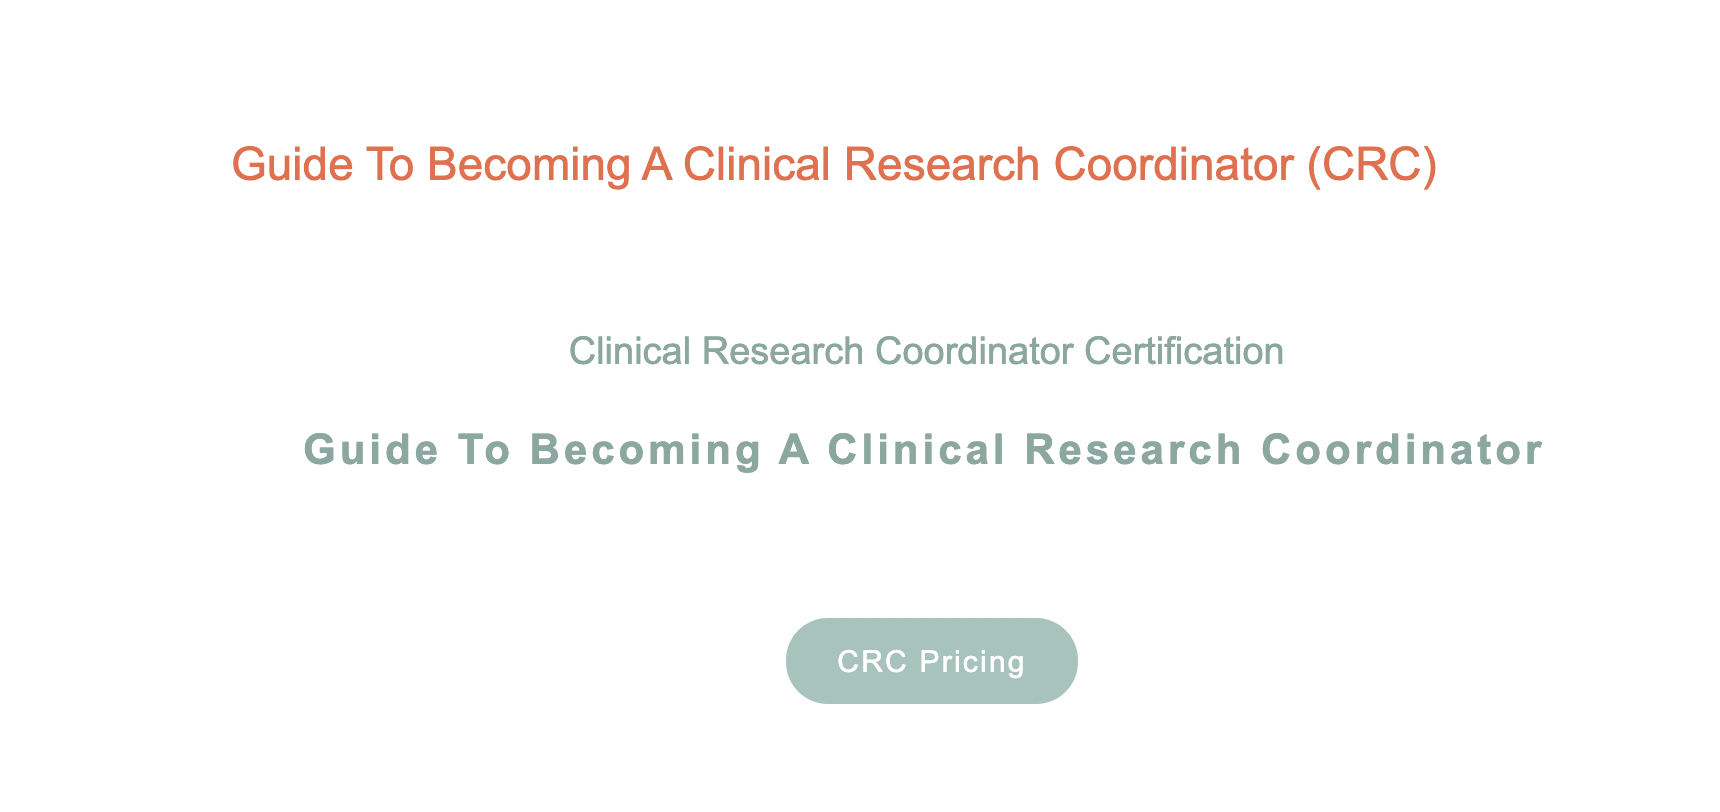 CCRPS Offers Updated Advanced Clinical Research Coordinator Certification Course (ACCRC) for Exceeding Clinical Research Training Compliance